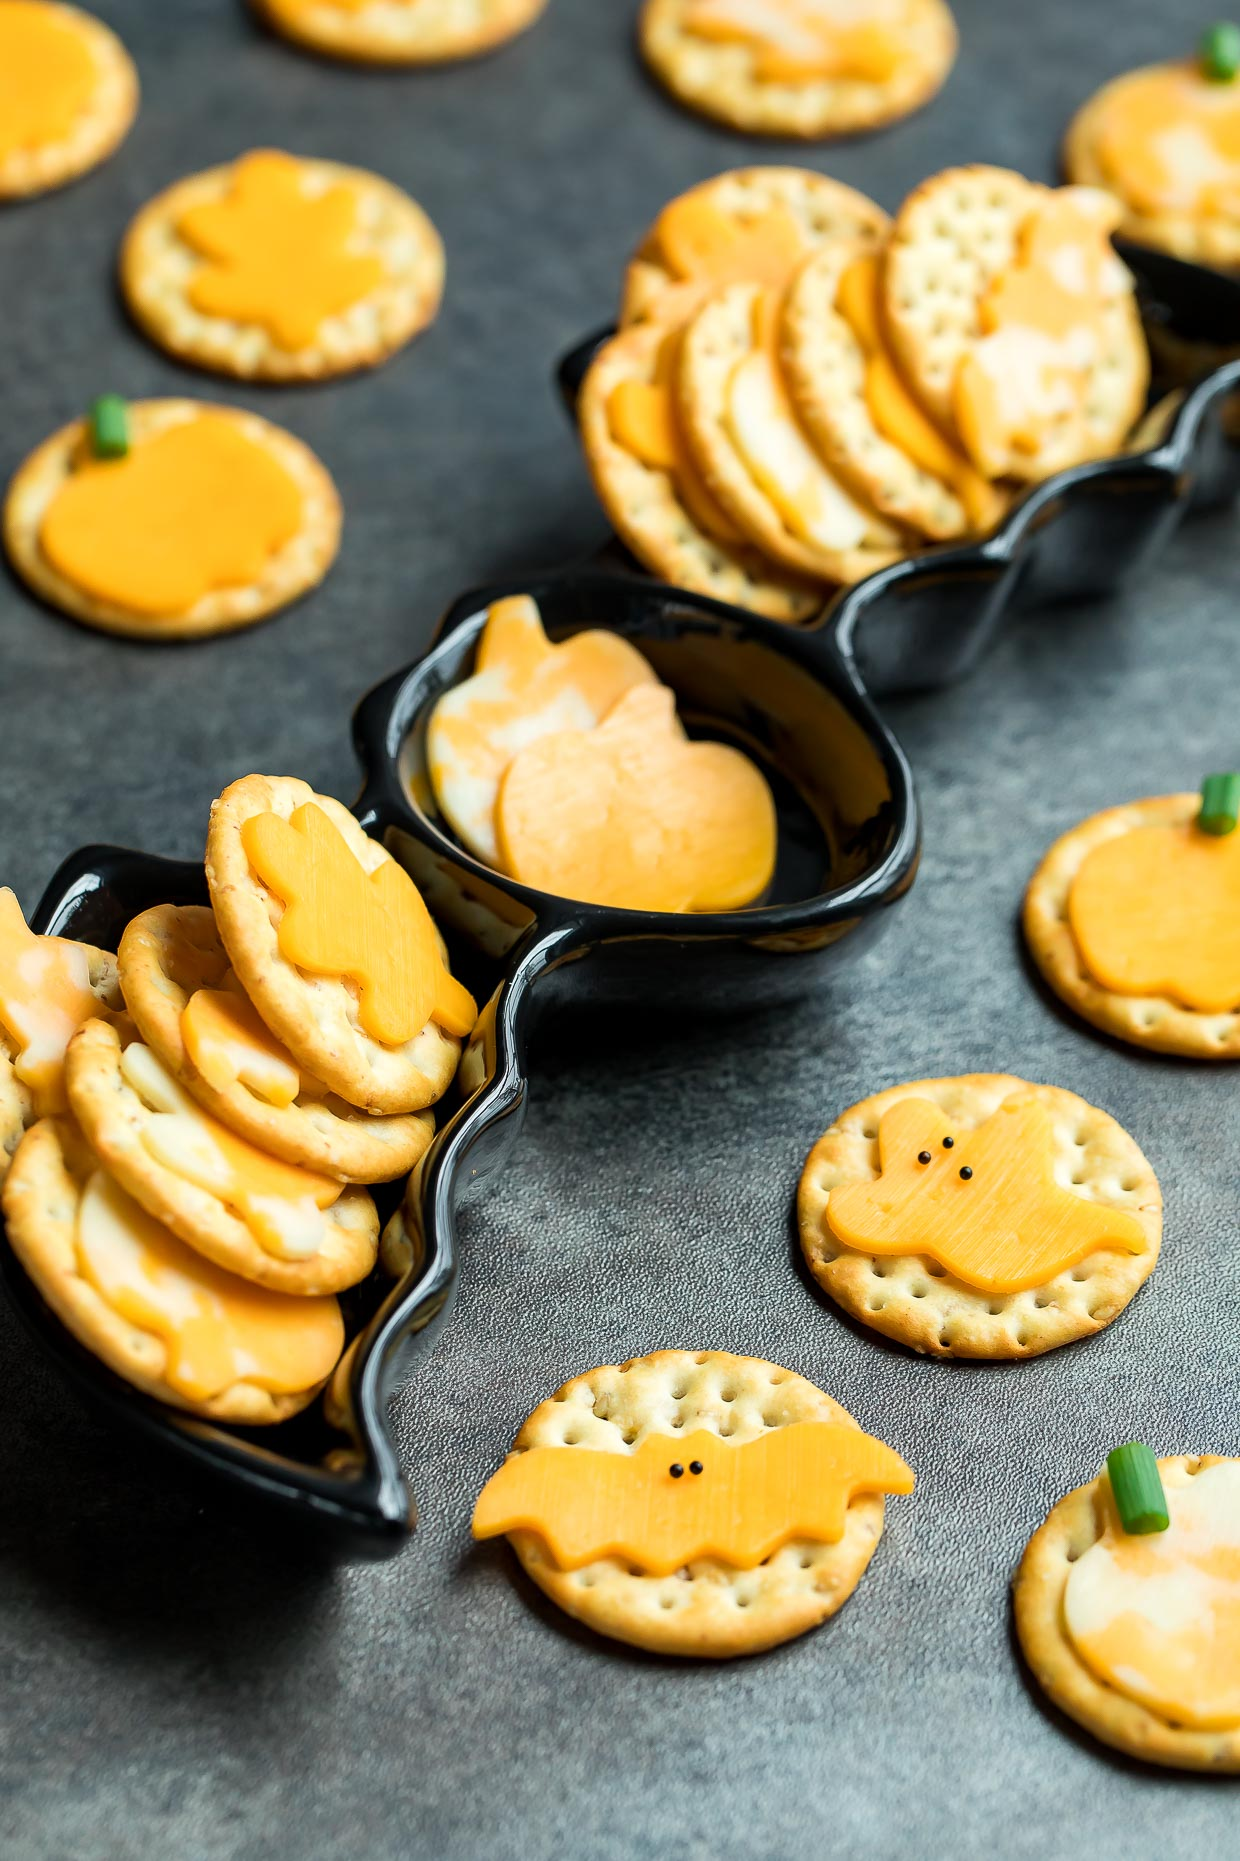 Halloween Cheese and Crackers Party Snack